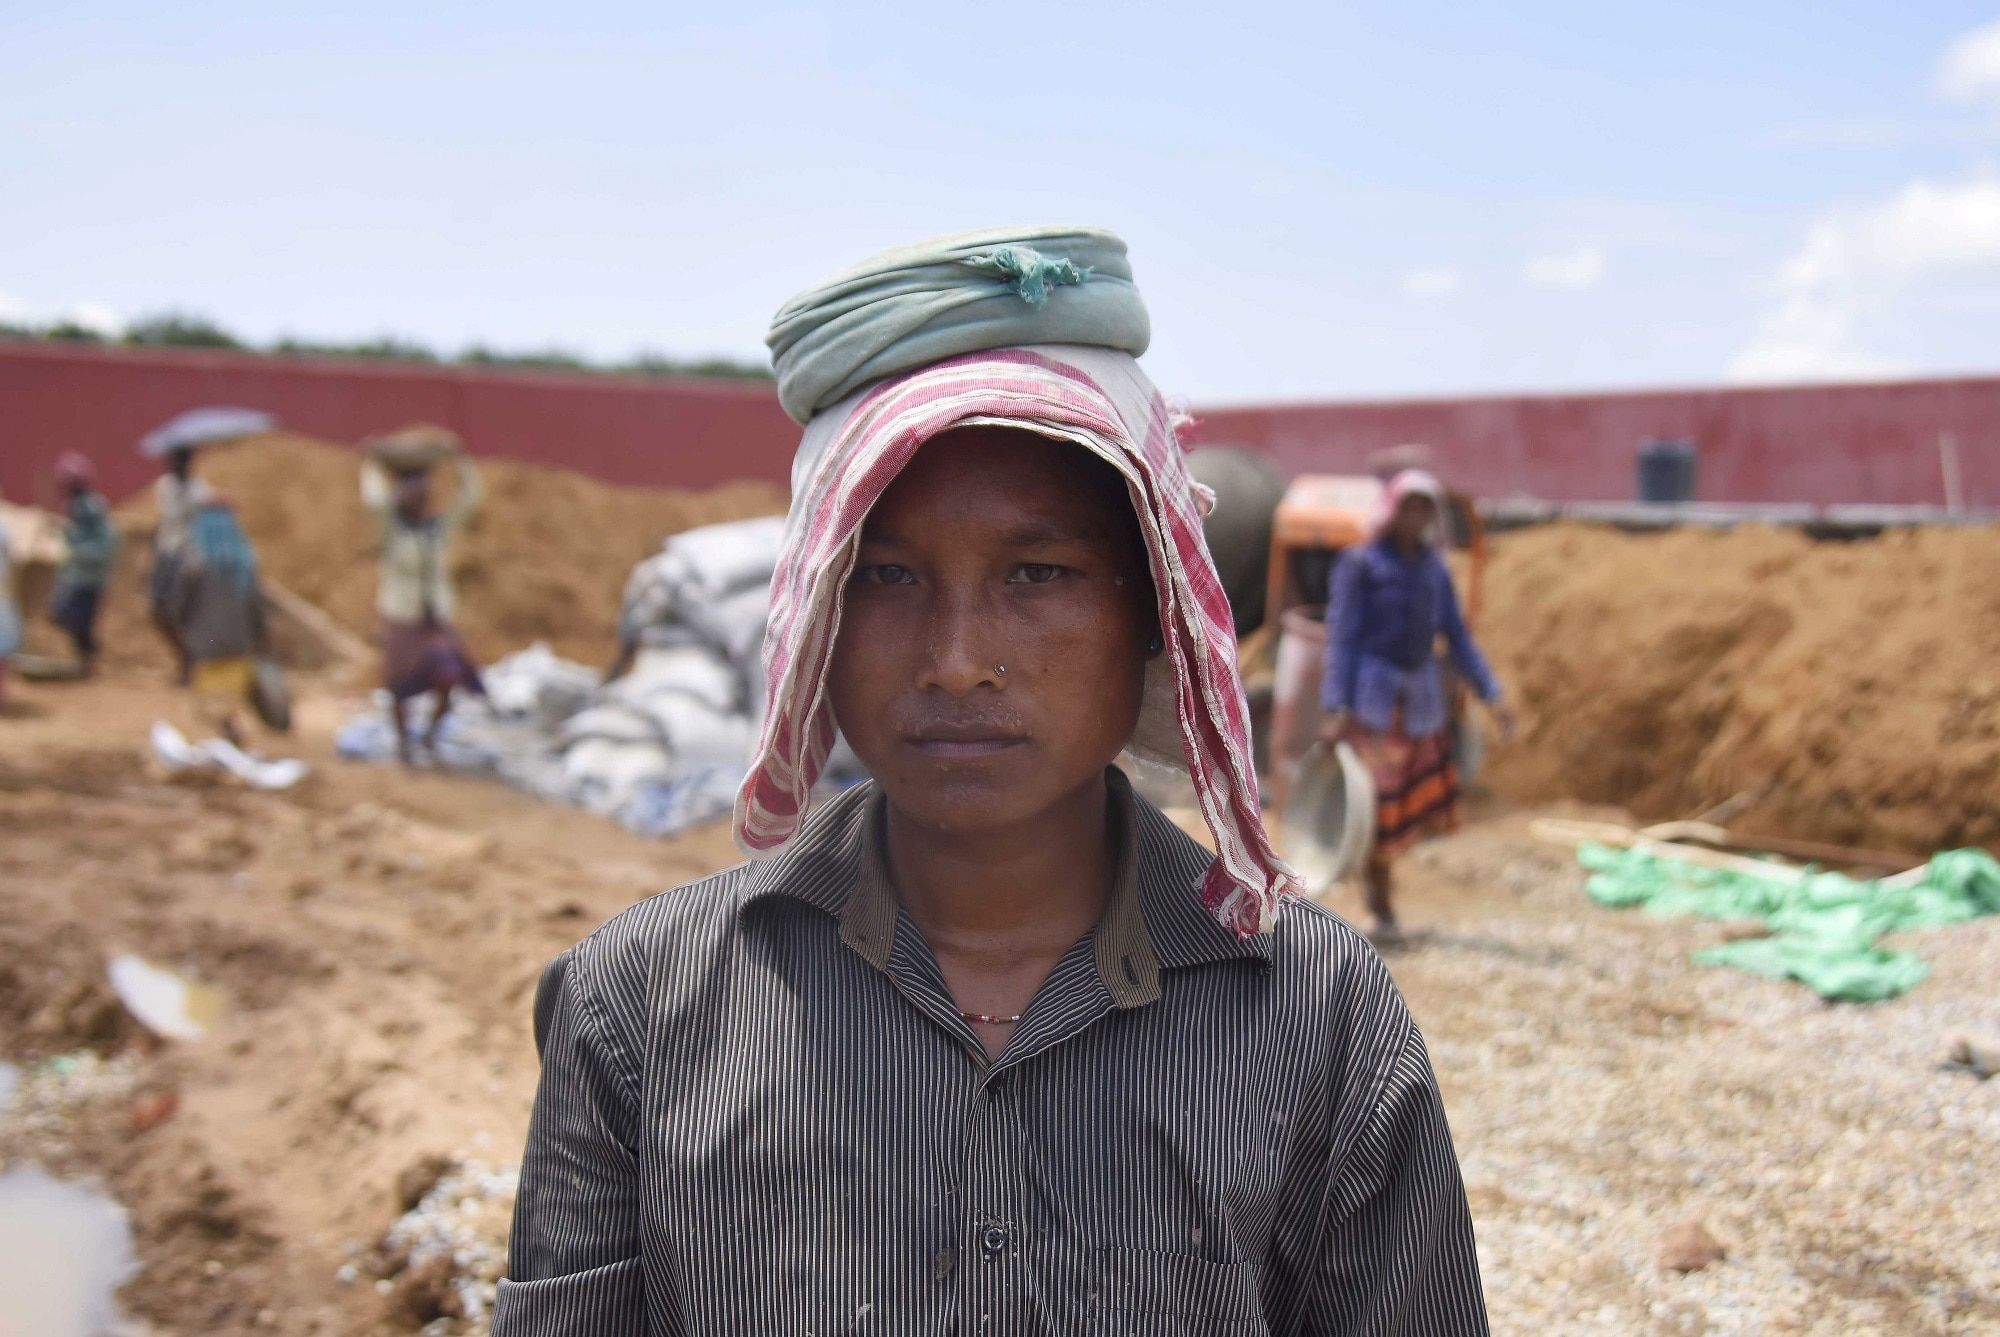 Shefali Hajong, a labourer whose name is excluded from the final list of the National Register of Citizens (NRC), poses for a picture at the site of an under-construction detention centre for illegal immigrants at a village in Goalpara district in the northeastern state of Assam, India, September 1, 2019. REUTERS/Anuwar Hazarika